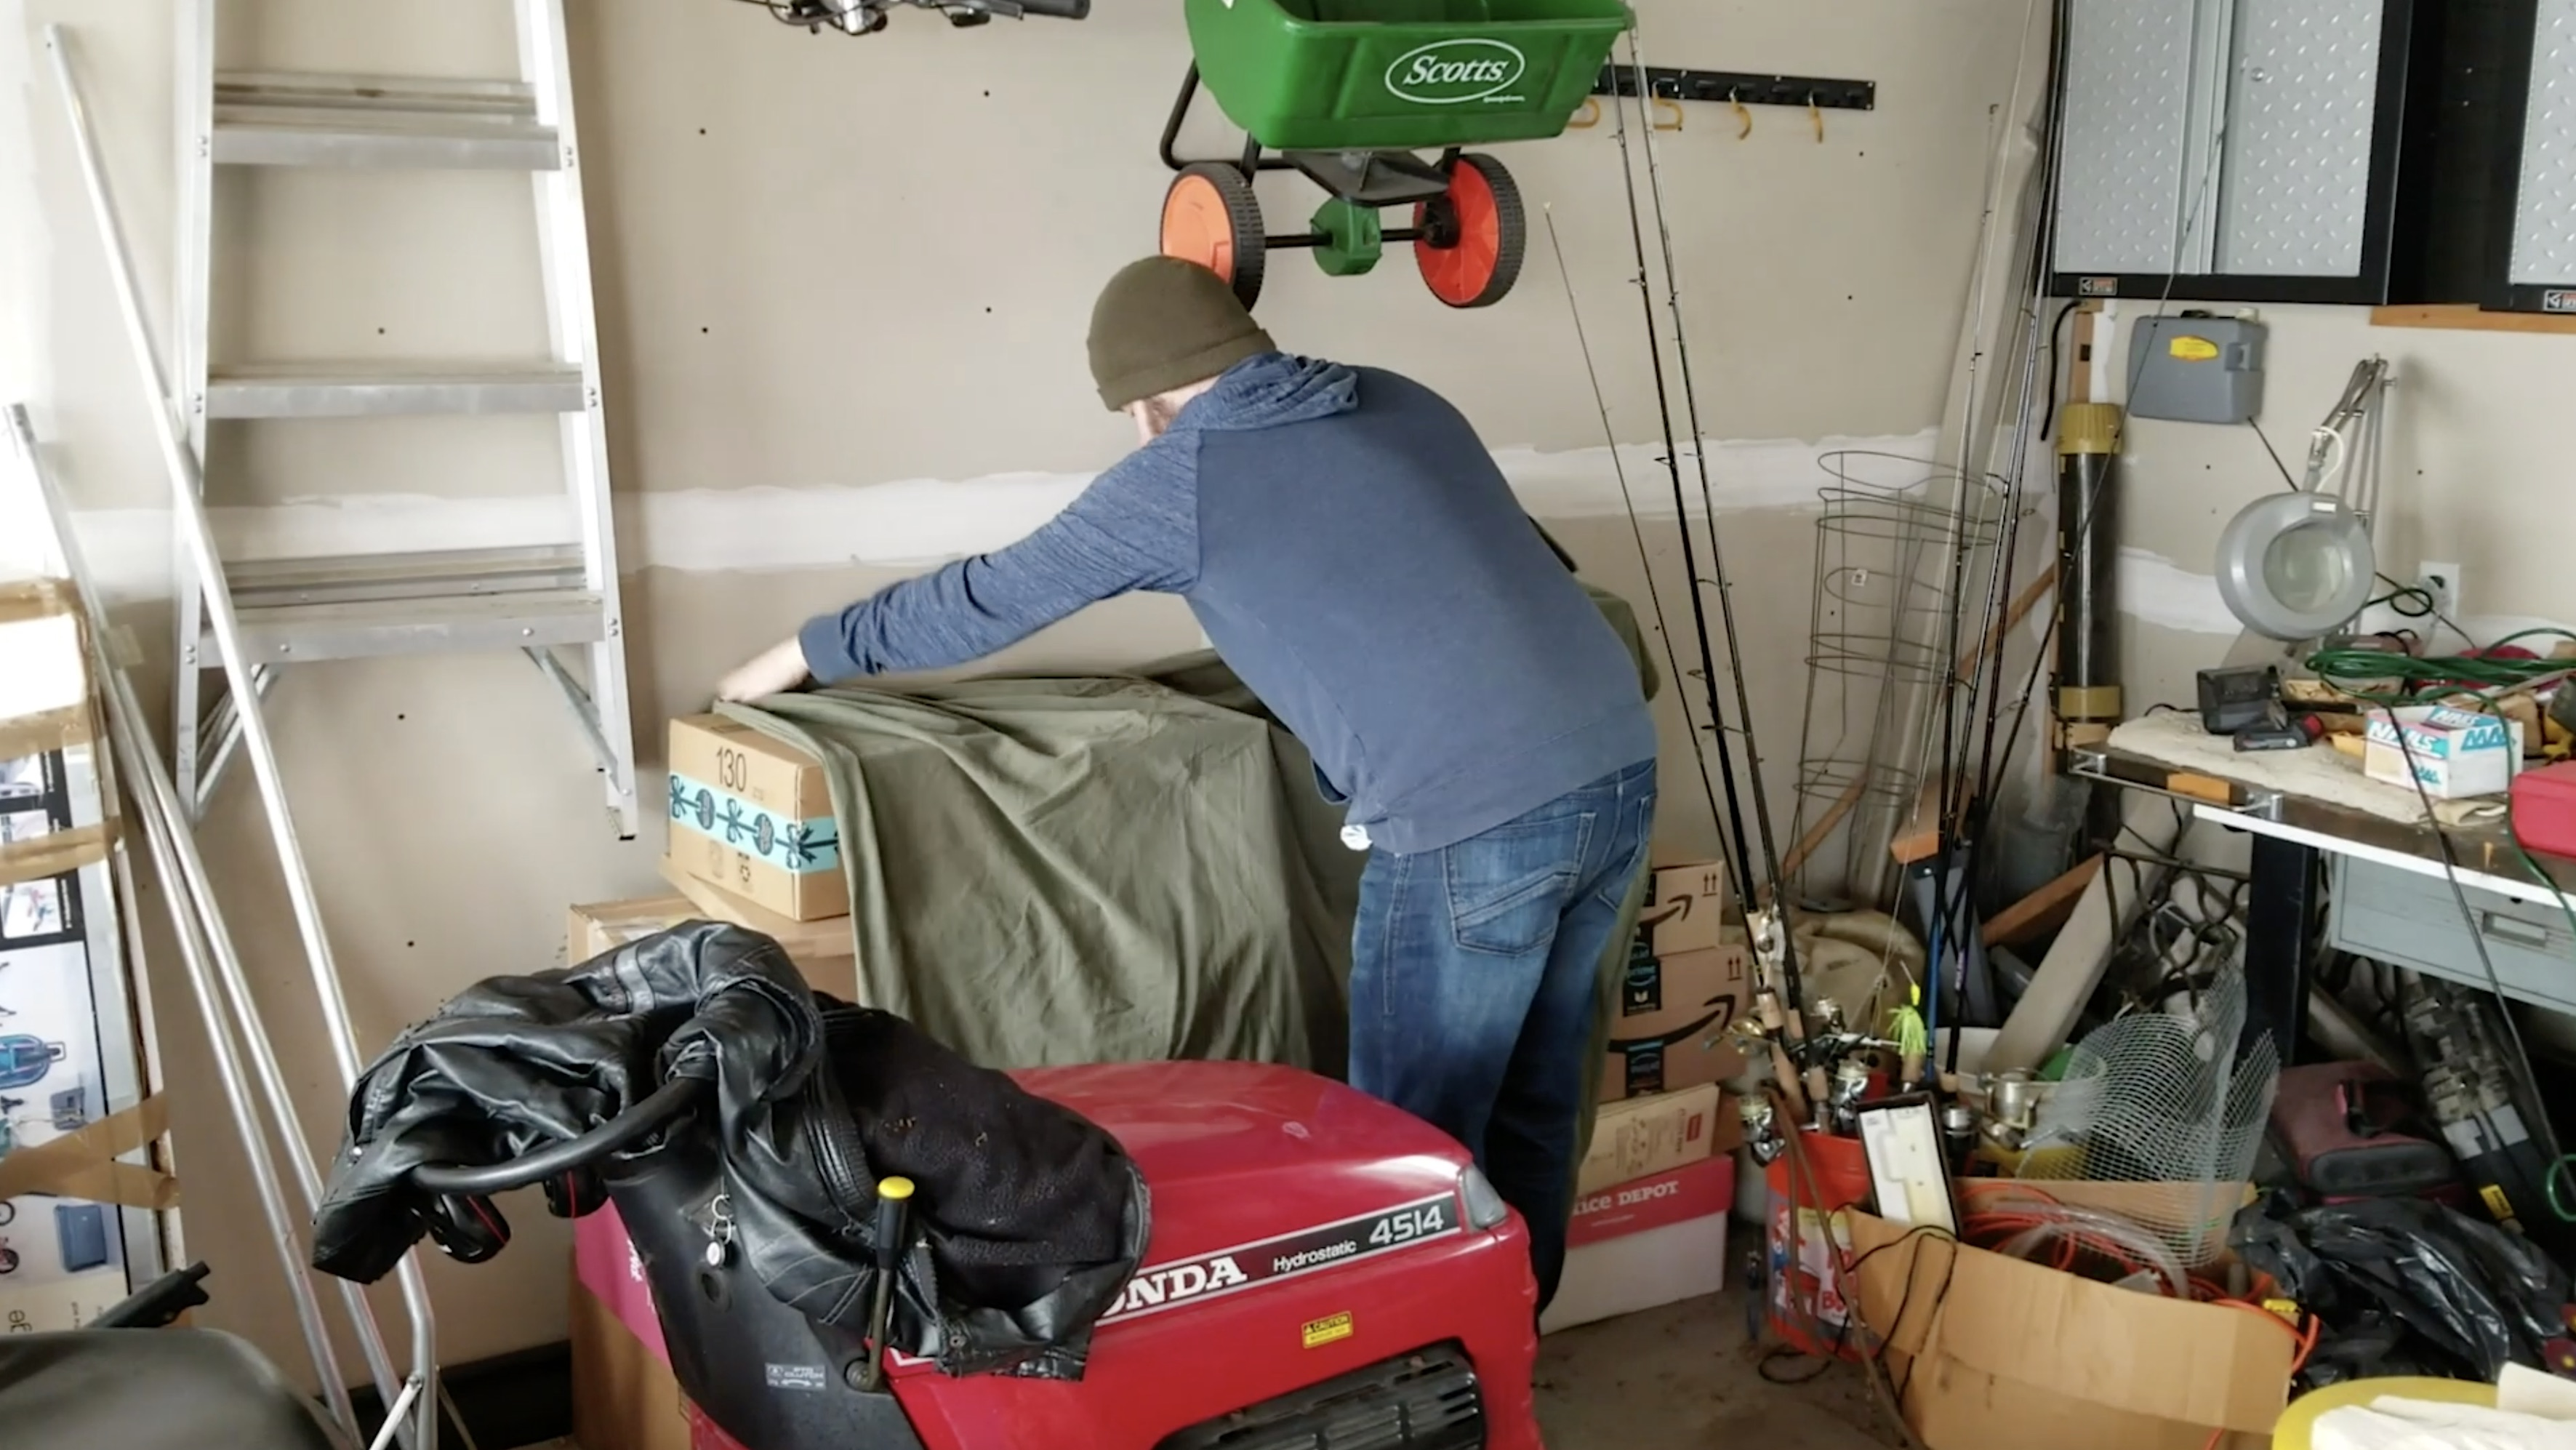 Jimmy Tarpey creating a fake bike out of boxes